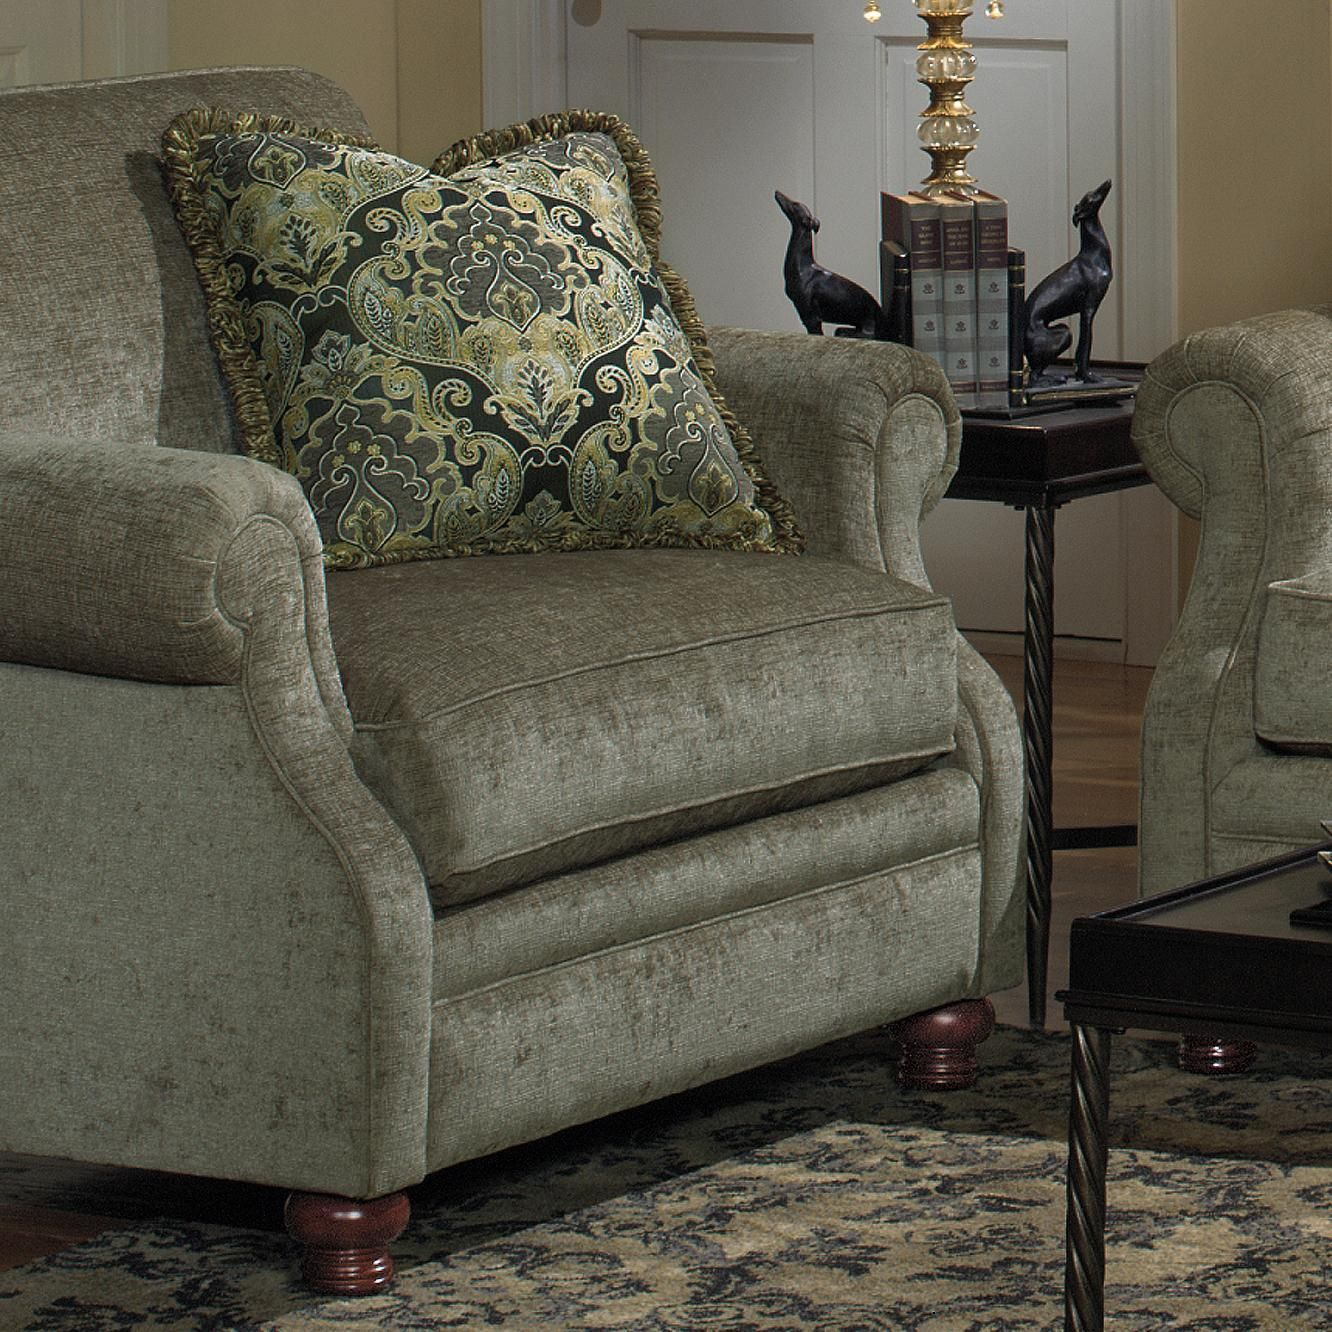 Craftmaster 7266 Transitional Upholstered Chair with Exposed Wood Feet   At  Home Furniture   Upholstered Chair. Craftmaster 7266 Transitional Upholstered Chair with Exposed Wood